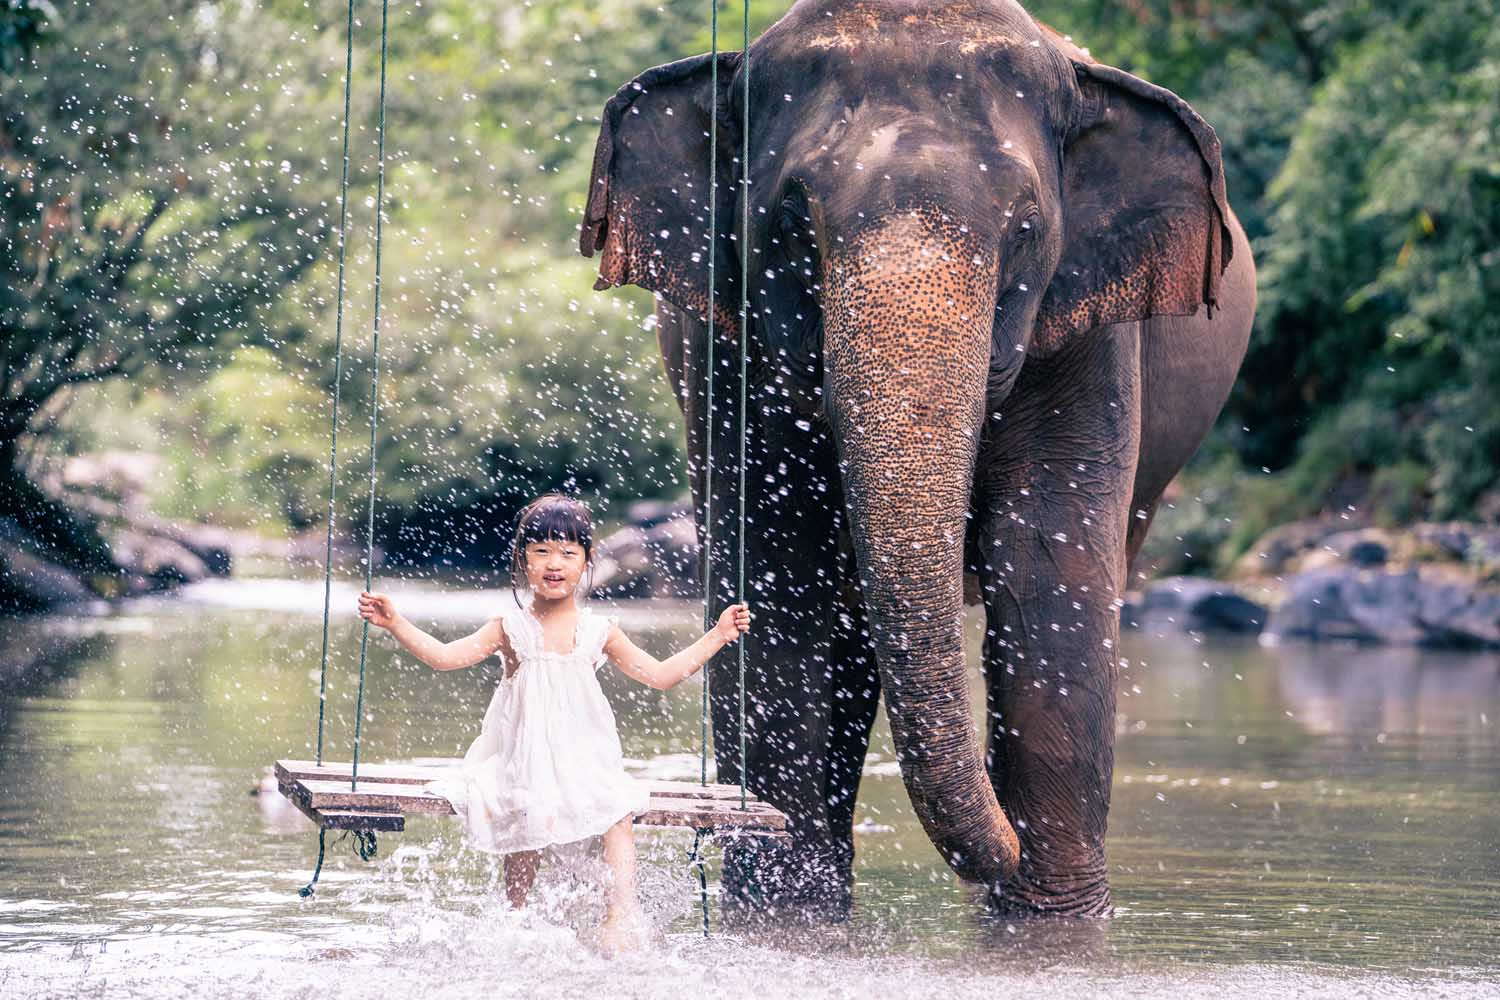 Child friendly elephant experiences